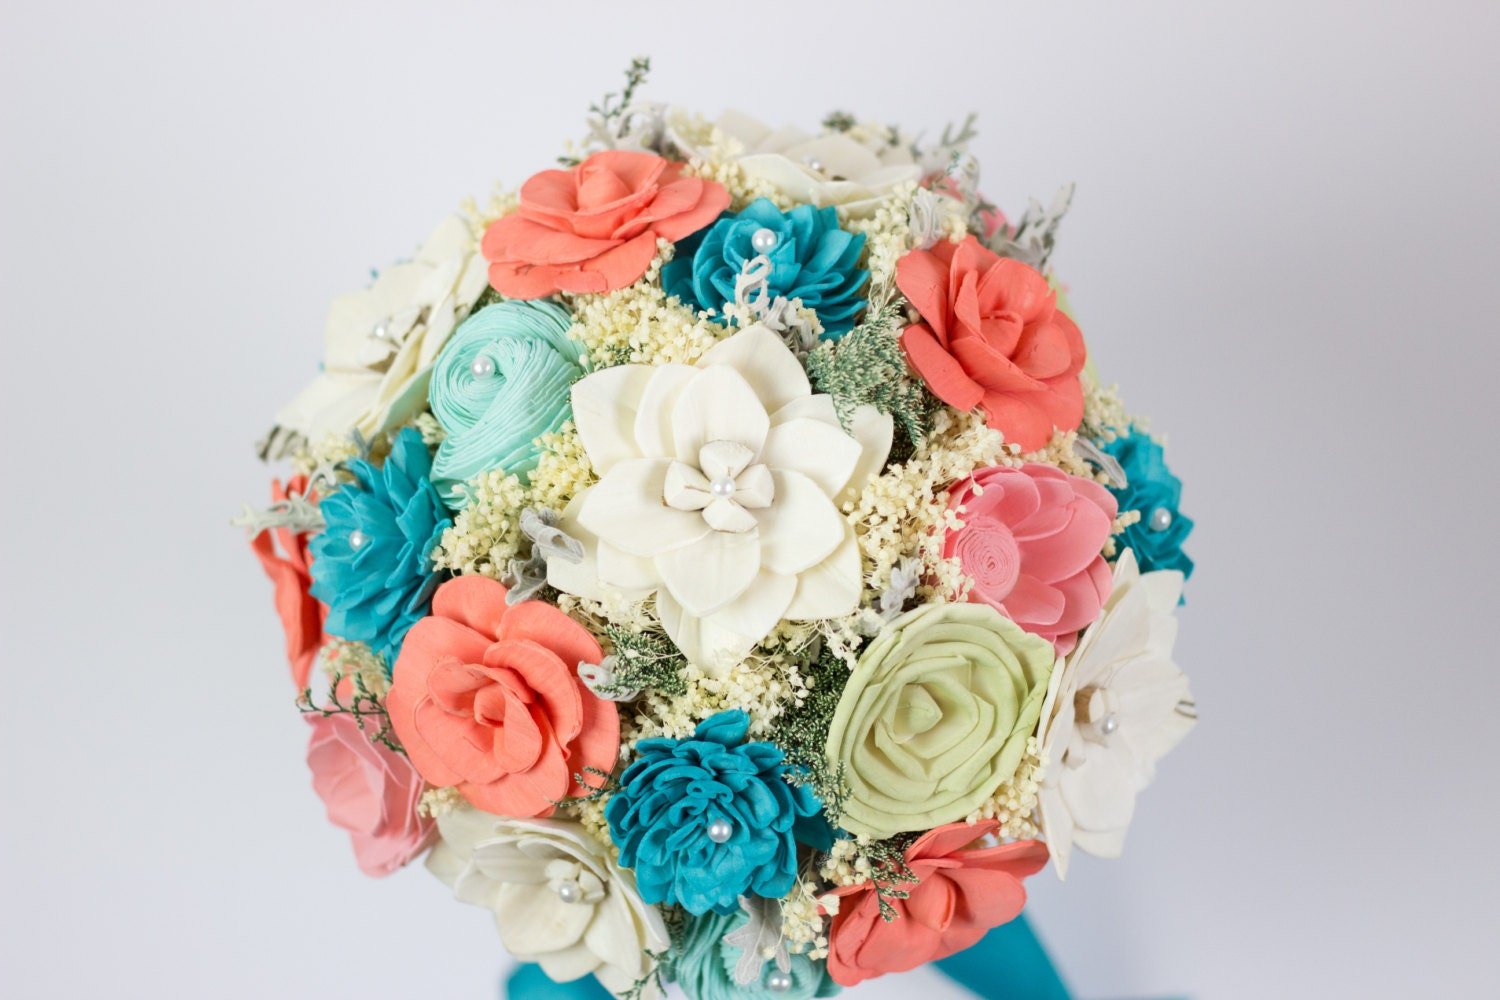 Completely new Turquoise Flower Arrangements &QI87 ...